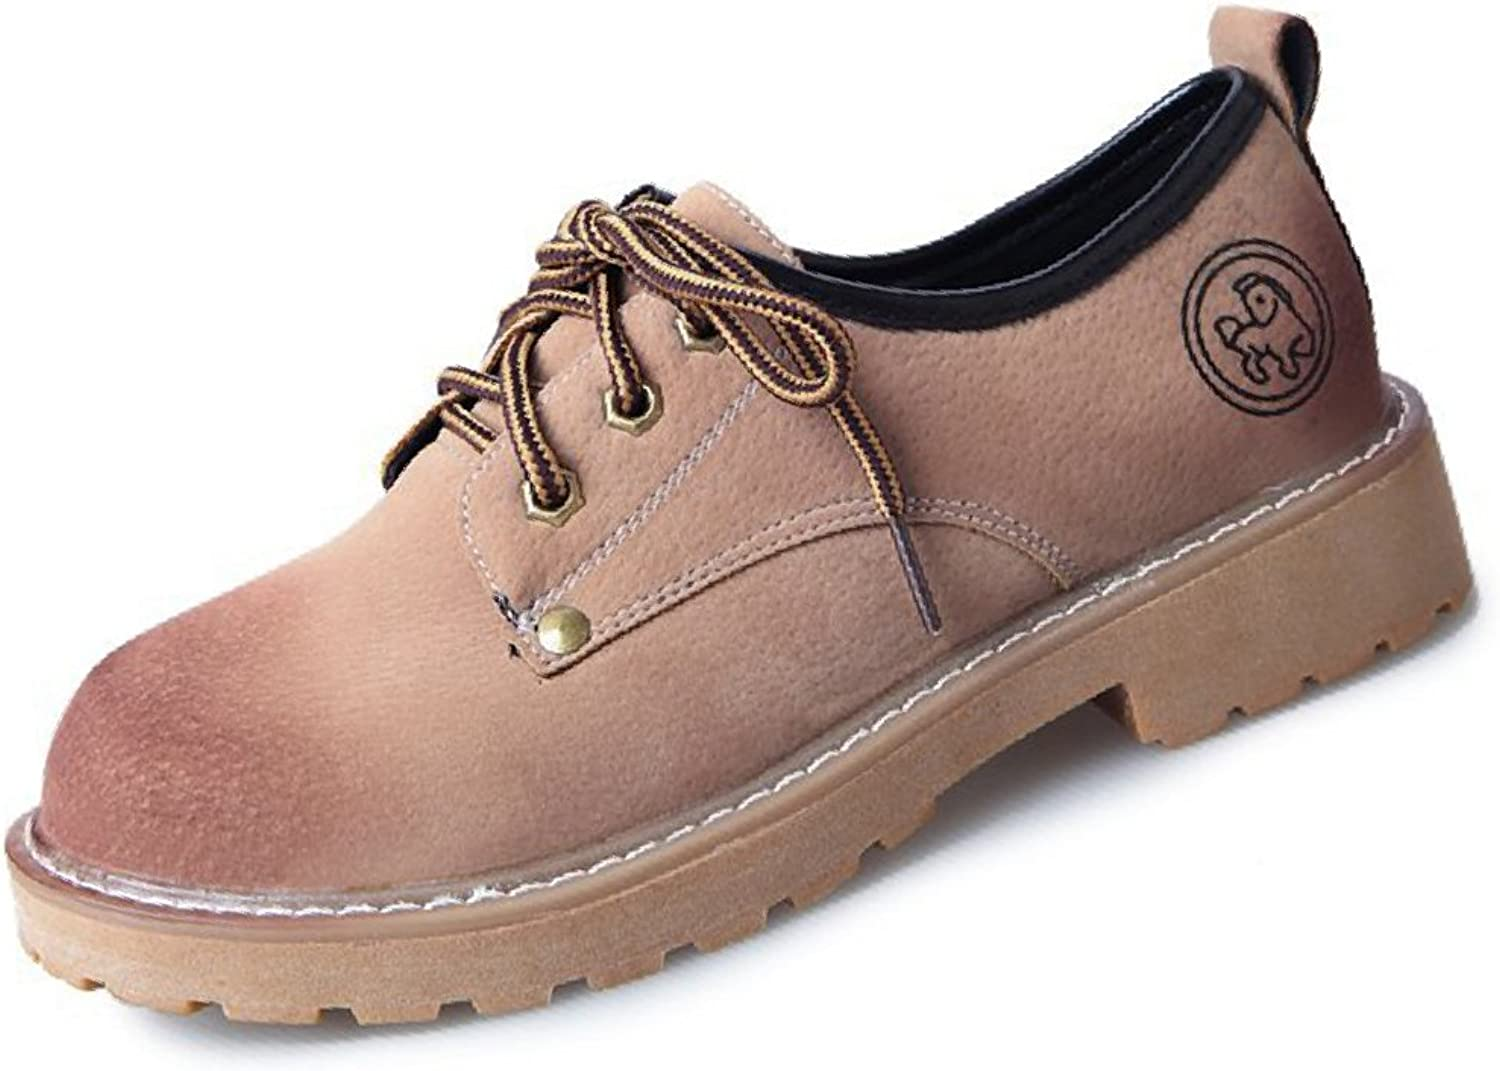 Btrada Women Retro Thick Heel Oxford shoes Round Toe Lace-Up Casual shoes